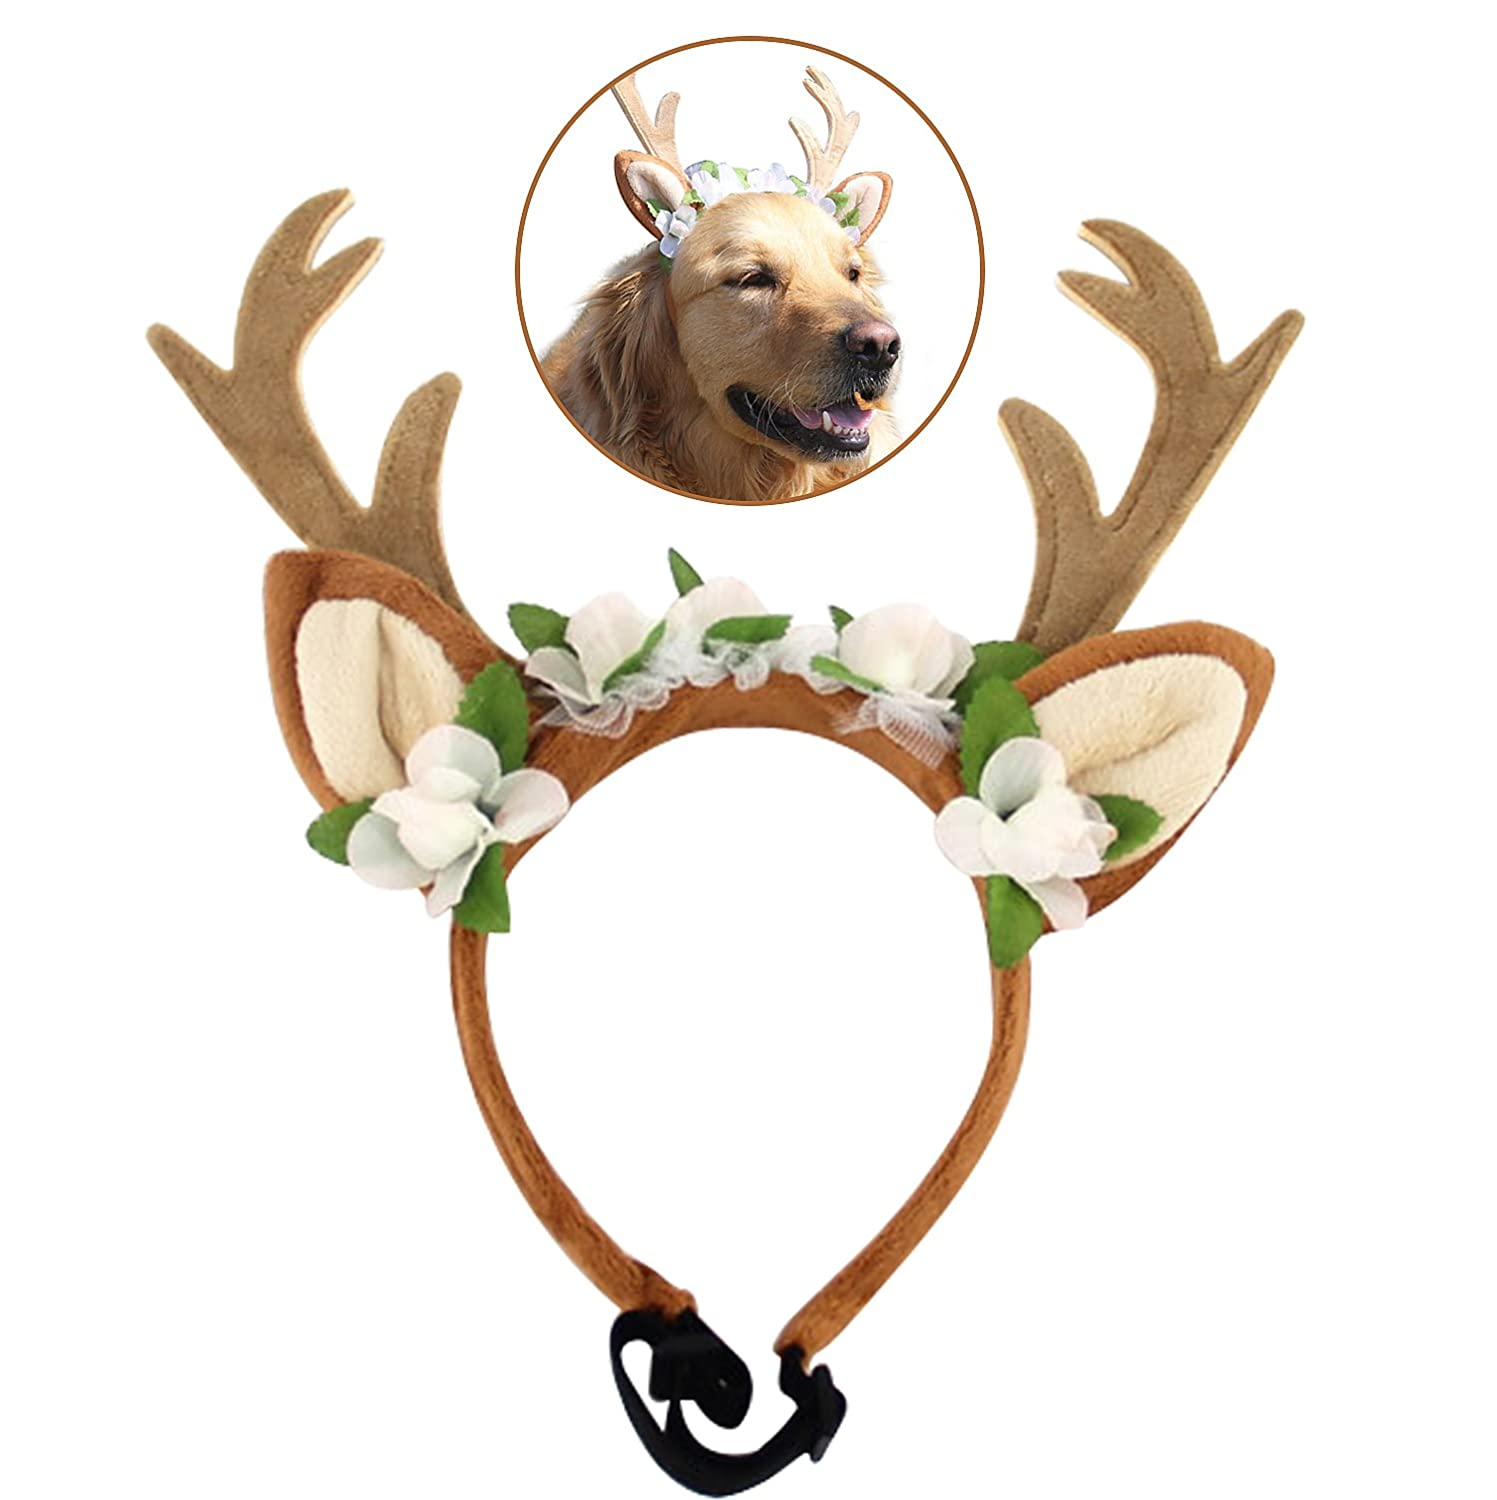 Bascolor Pet Costume Antlers Headbands with Ears Adjustable Flexible for Dogs Cats Various Size Halloween Christmas Festival Costume